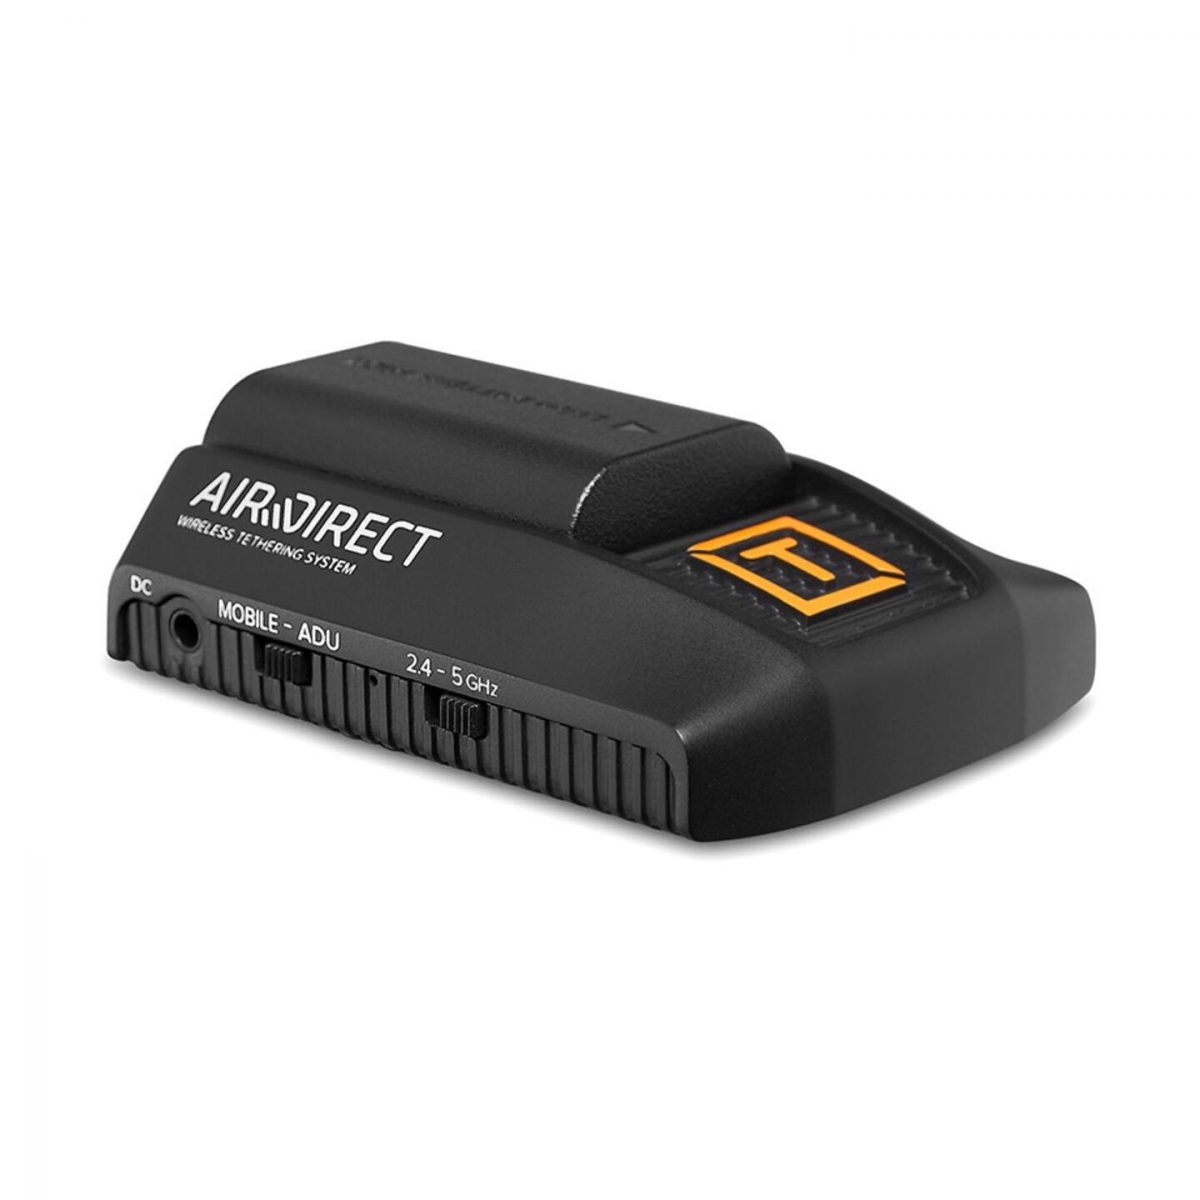 tether_tools_air_direct_wireless_tethering_system_01